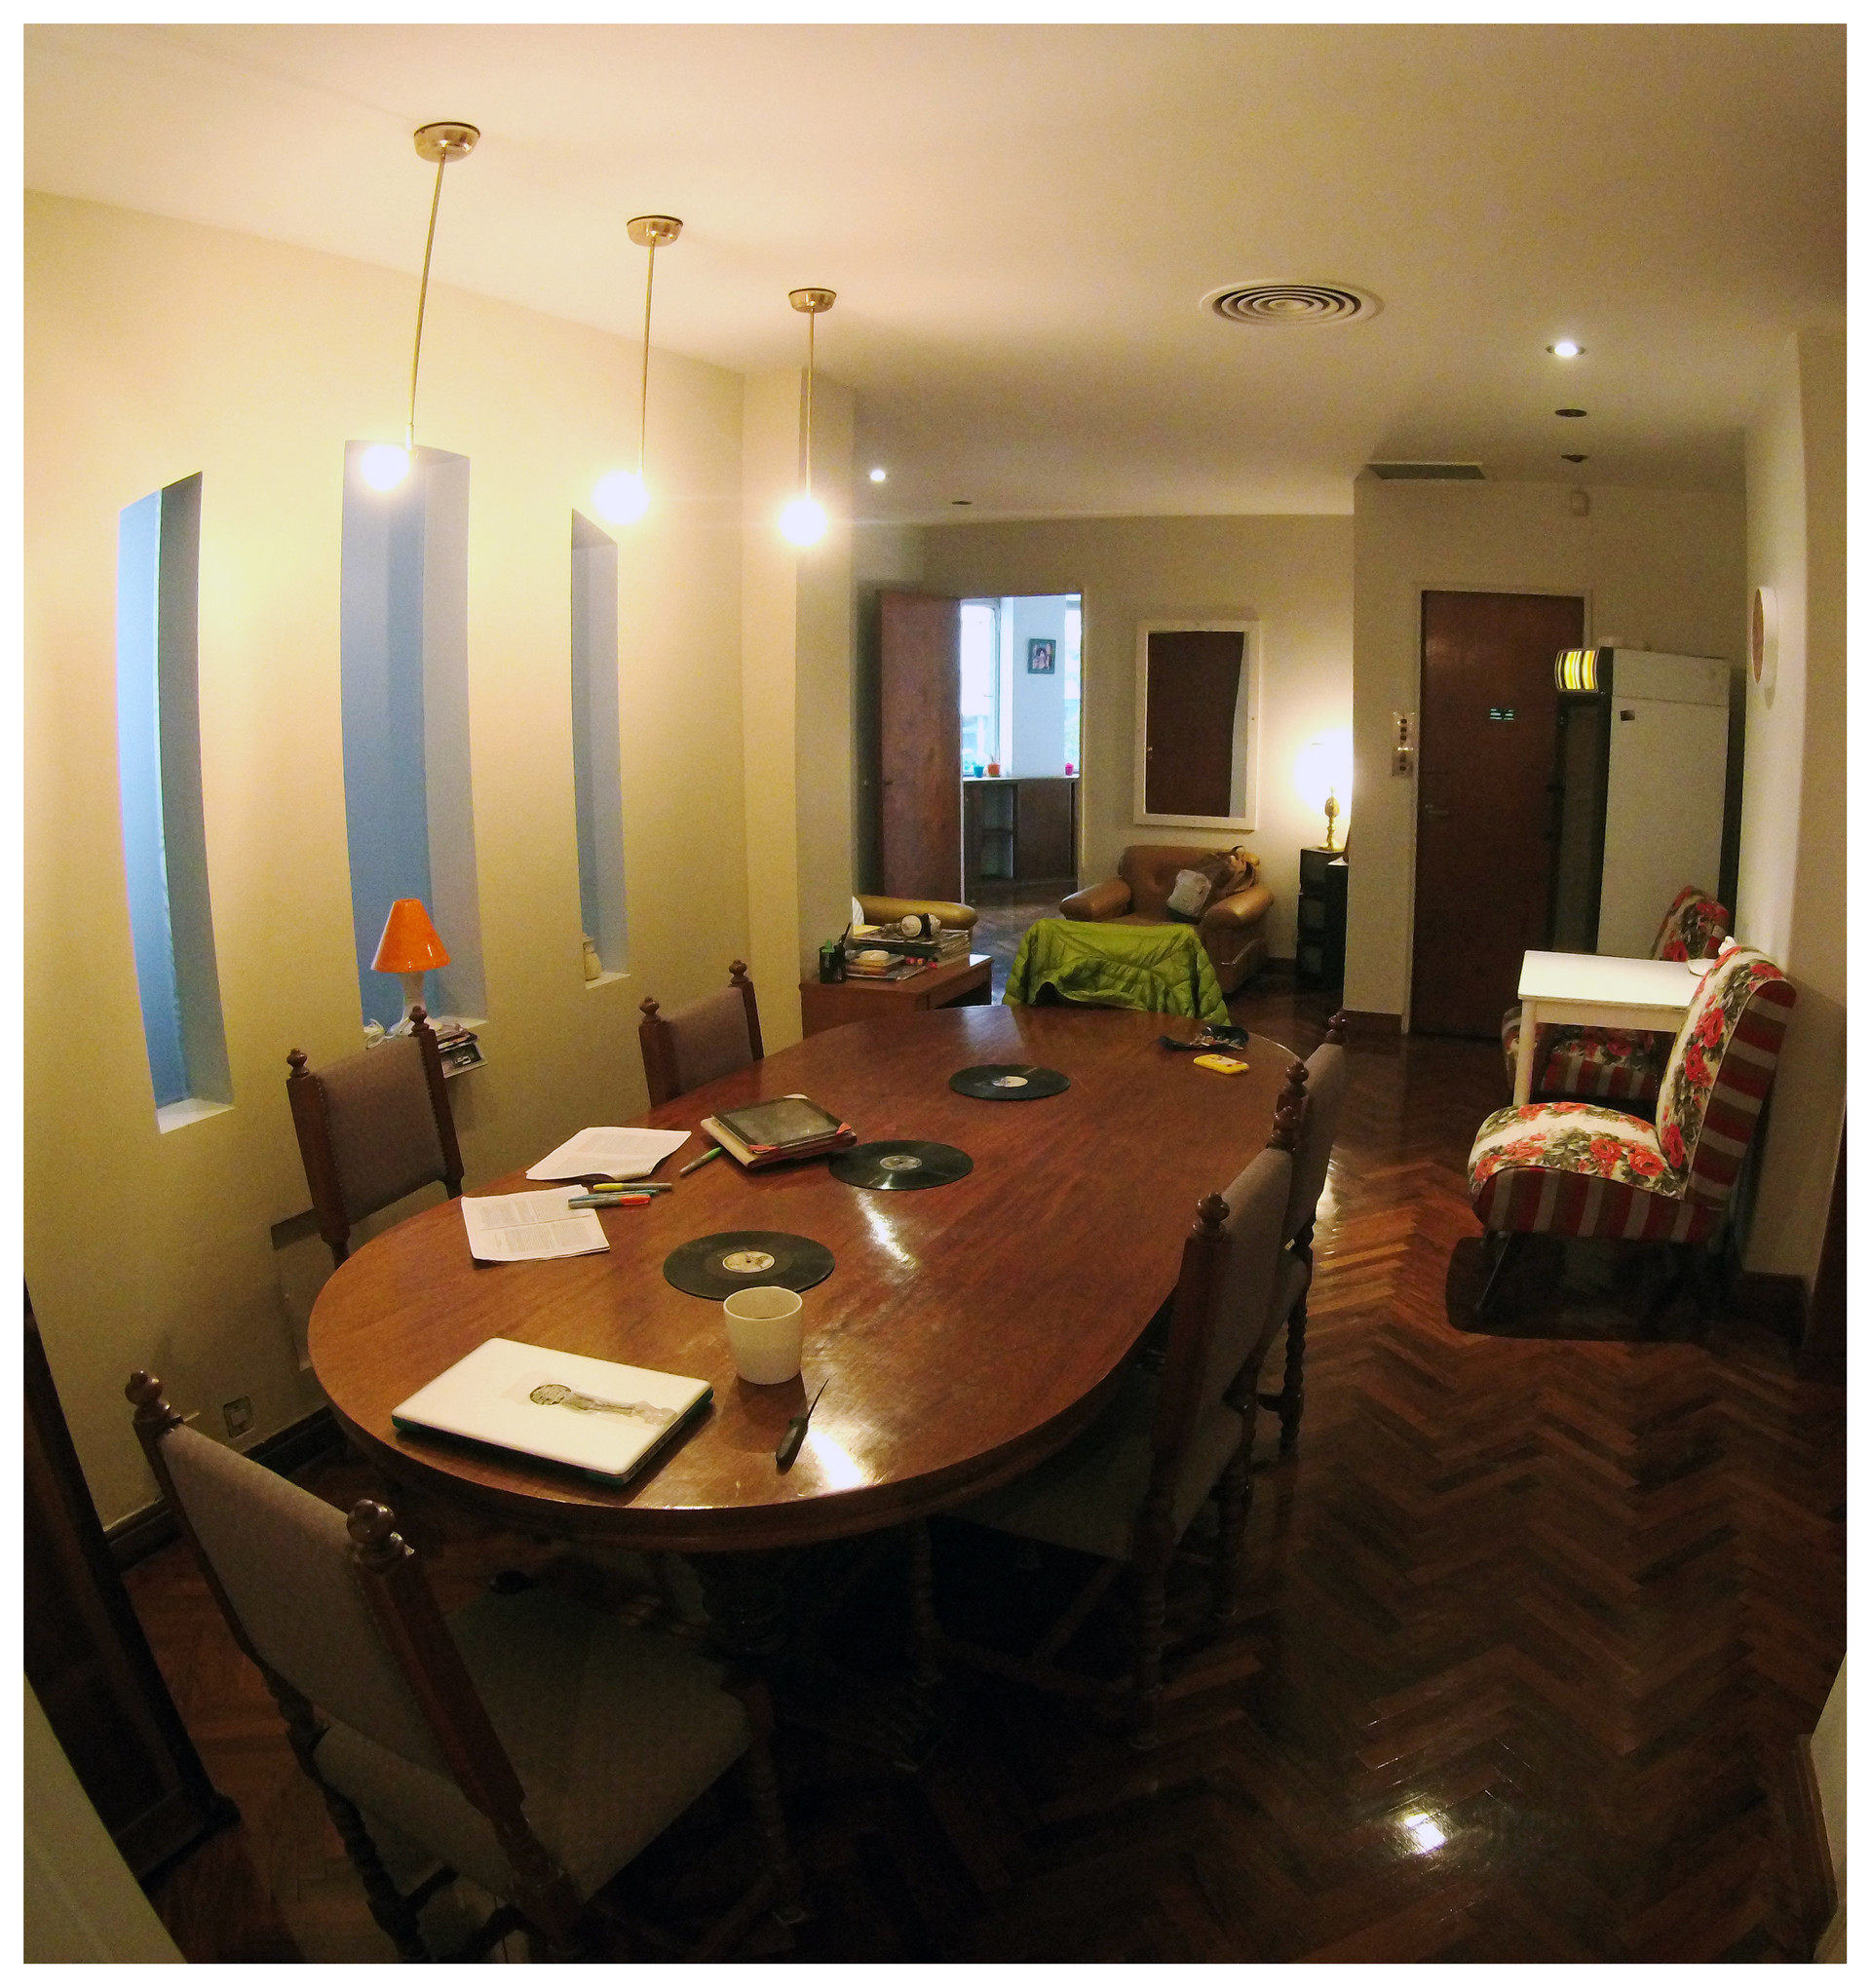 Room Apartment For Rent: Double Shared Room In Shared Apartment For Students